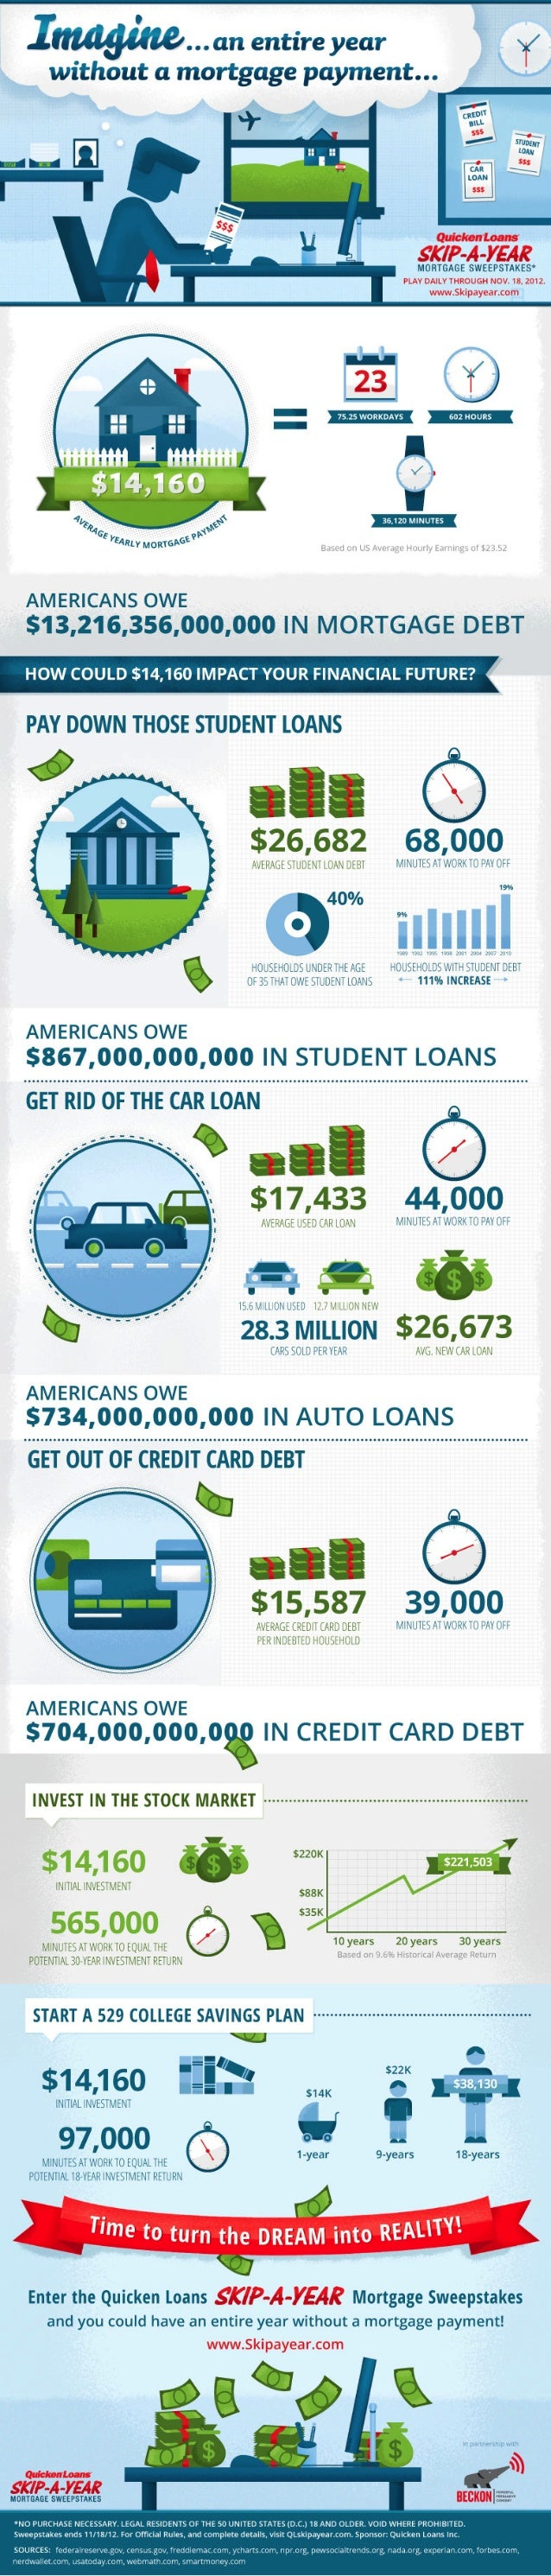 Skip-A-Year Mortgage Payment and Debt Infographic Quicken Loans Zing Blog